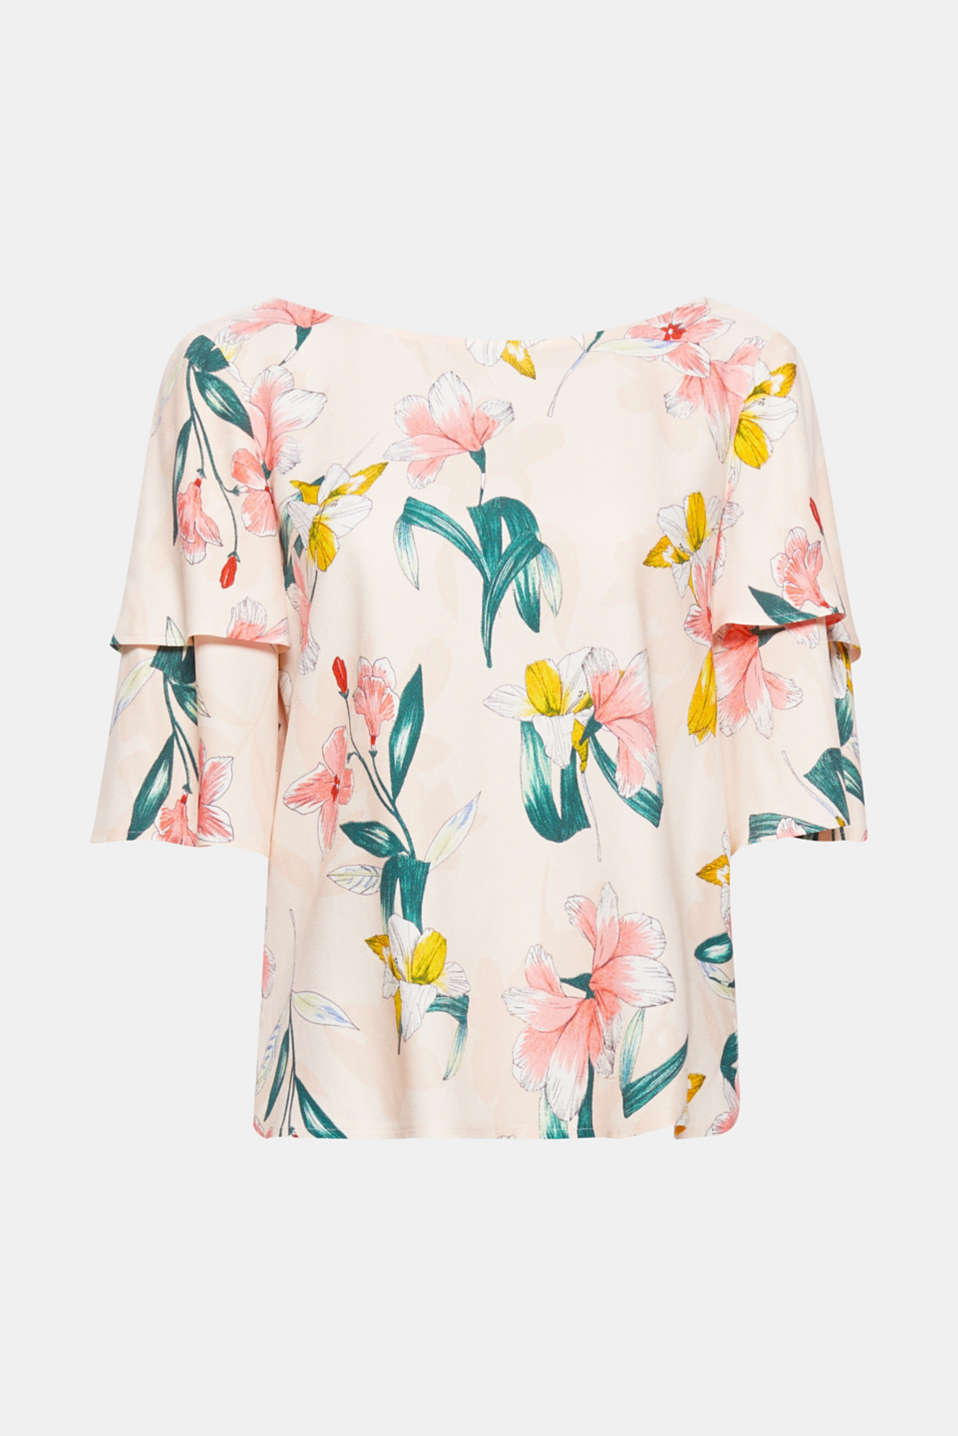 Romantic floral print meets pretty flounce sleeves: this blouse quickly stands out of the crowd with its distinctive bow detail, making your summer outfit absolutely complete.